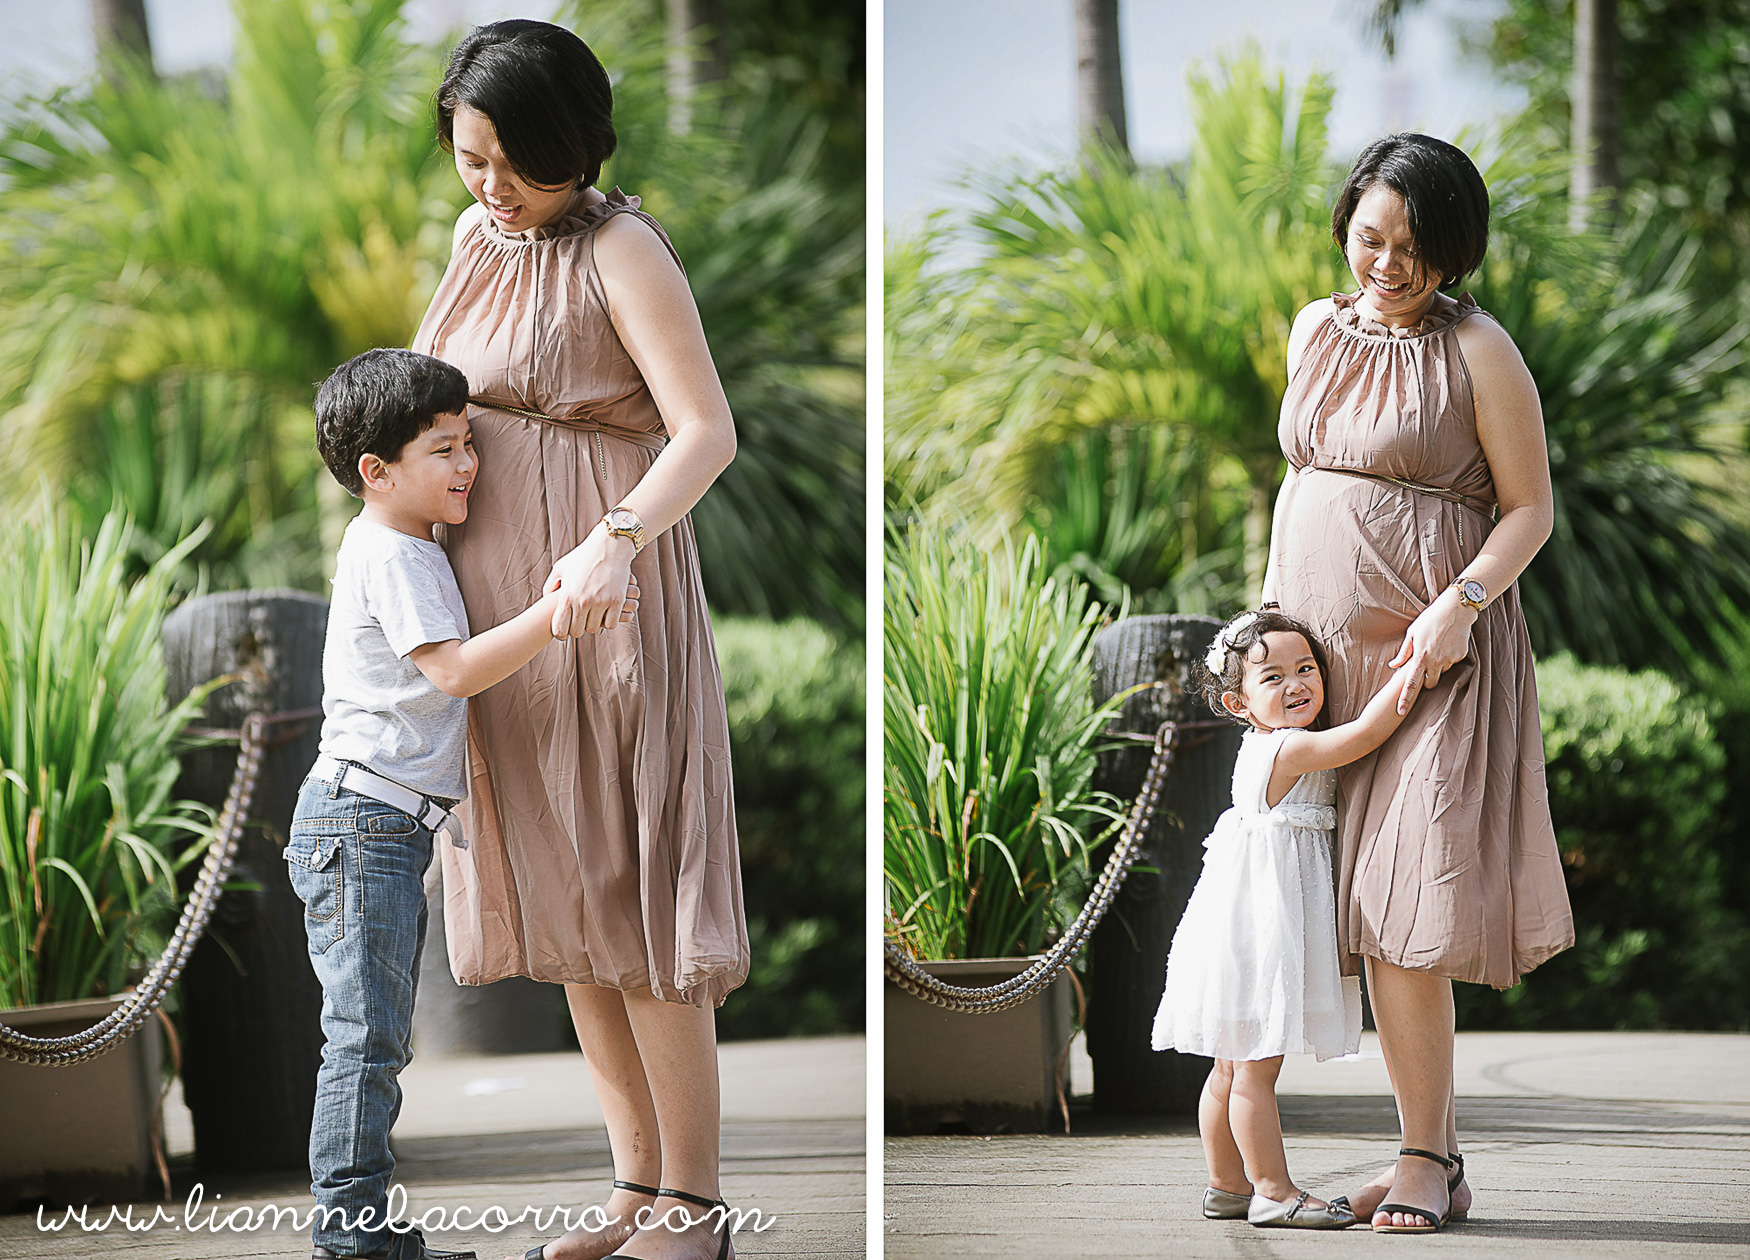 Lifestyle Maternity Family Photography by Lianne Bacorro